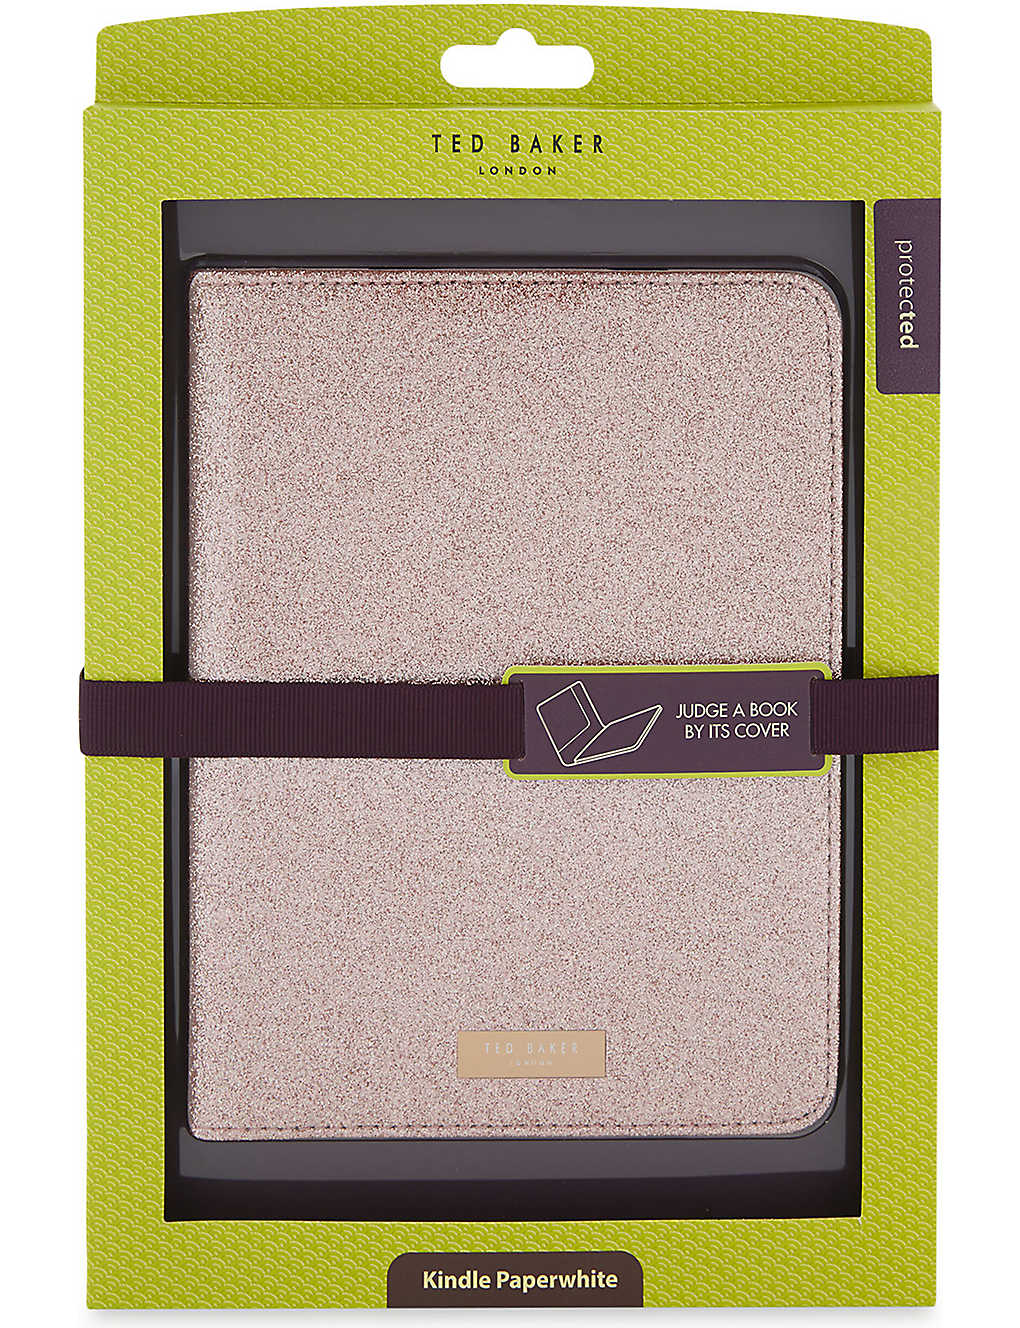 huge discount cf14e 0dc68 TED BAKER - Shiniee glitter Kindle Paperwhite case | Selfridges.com